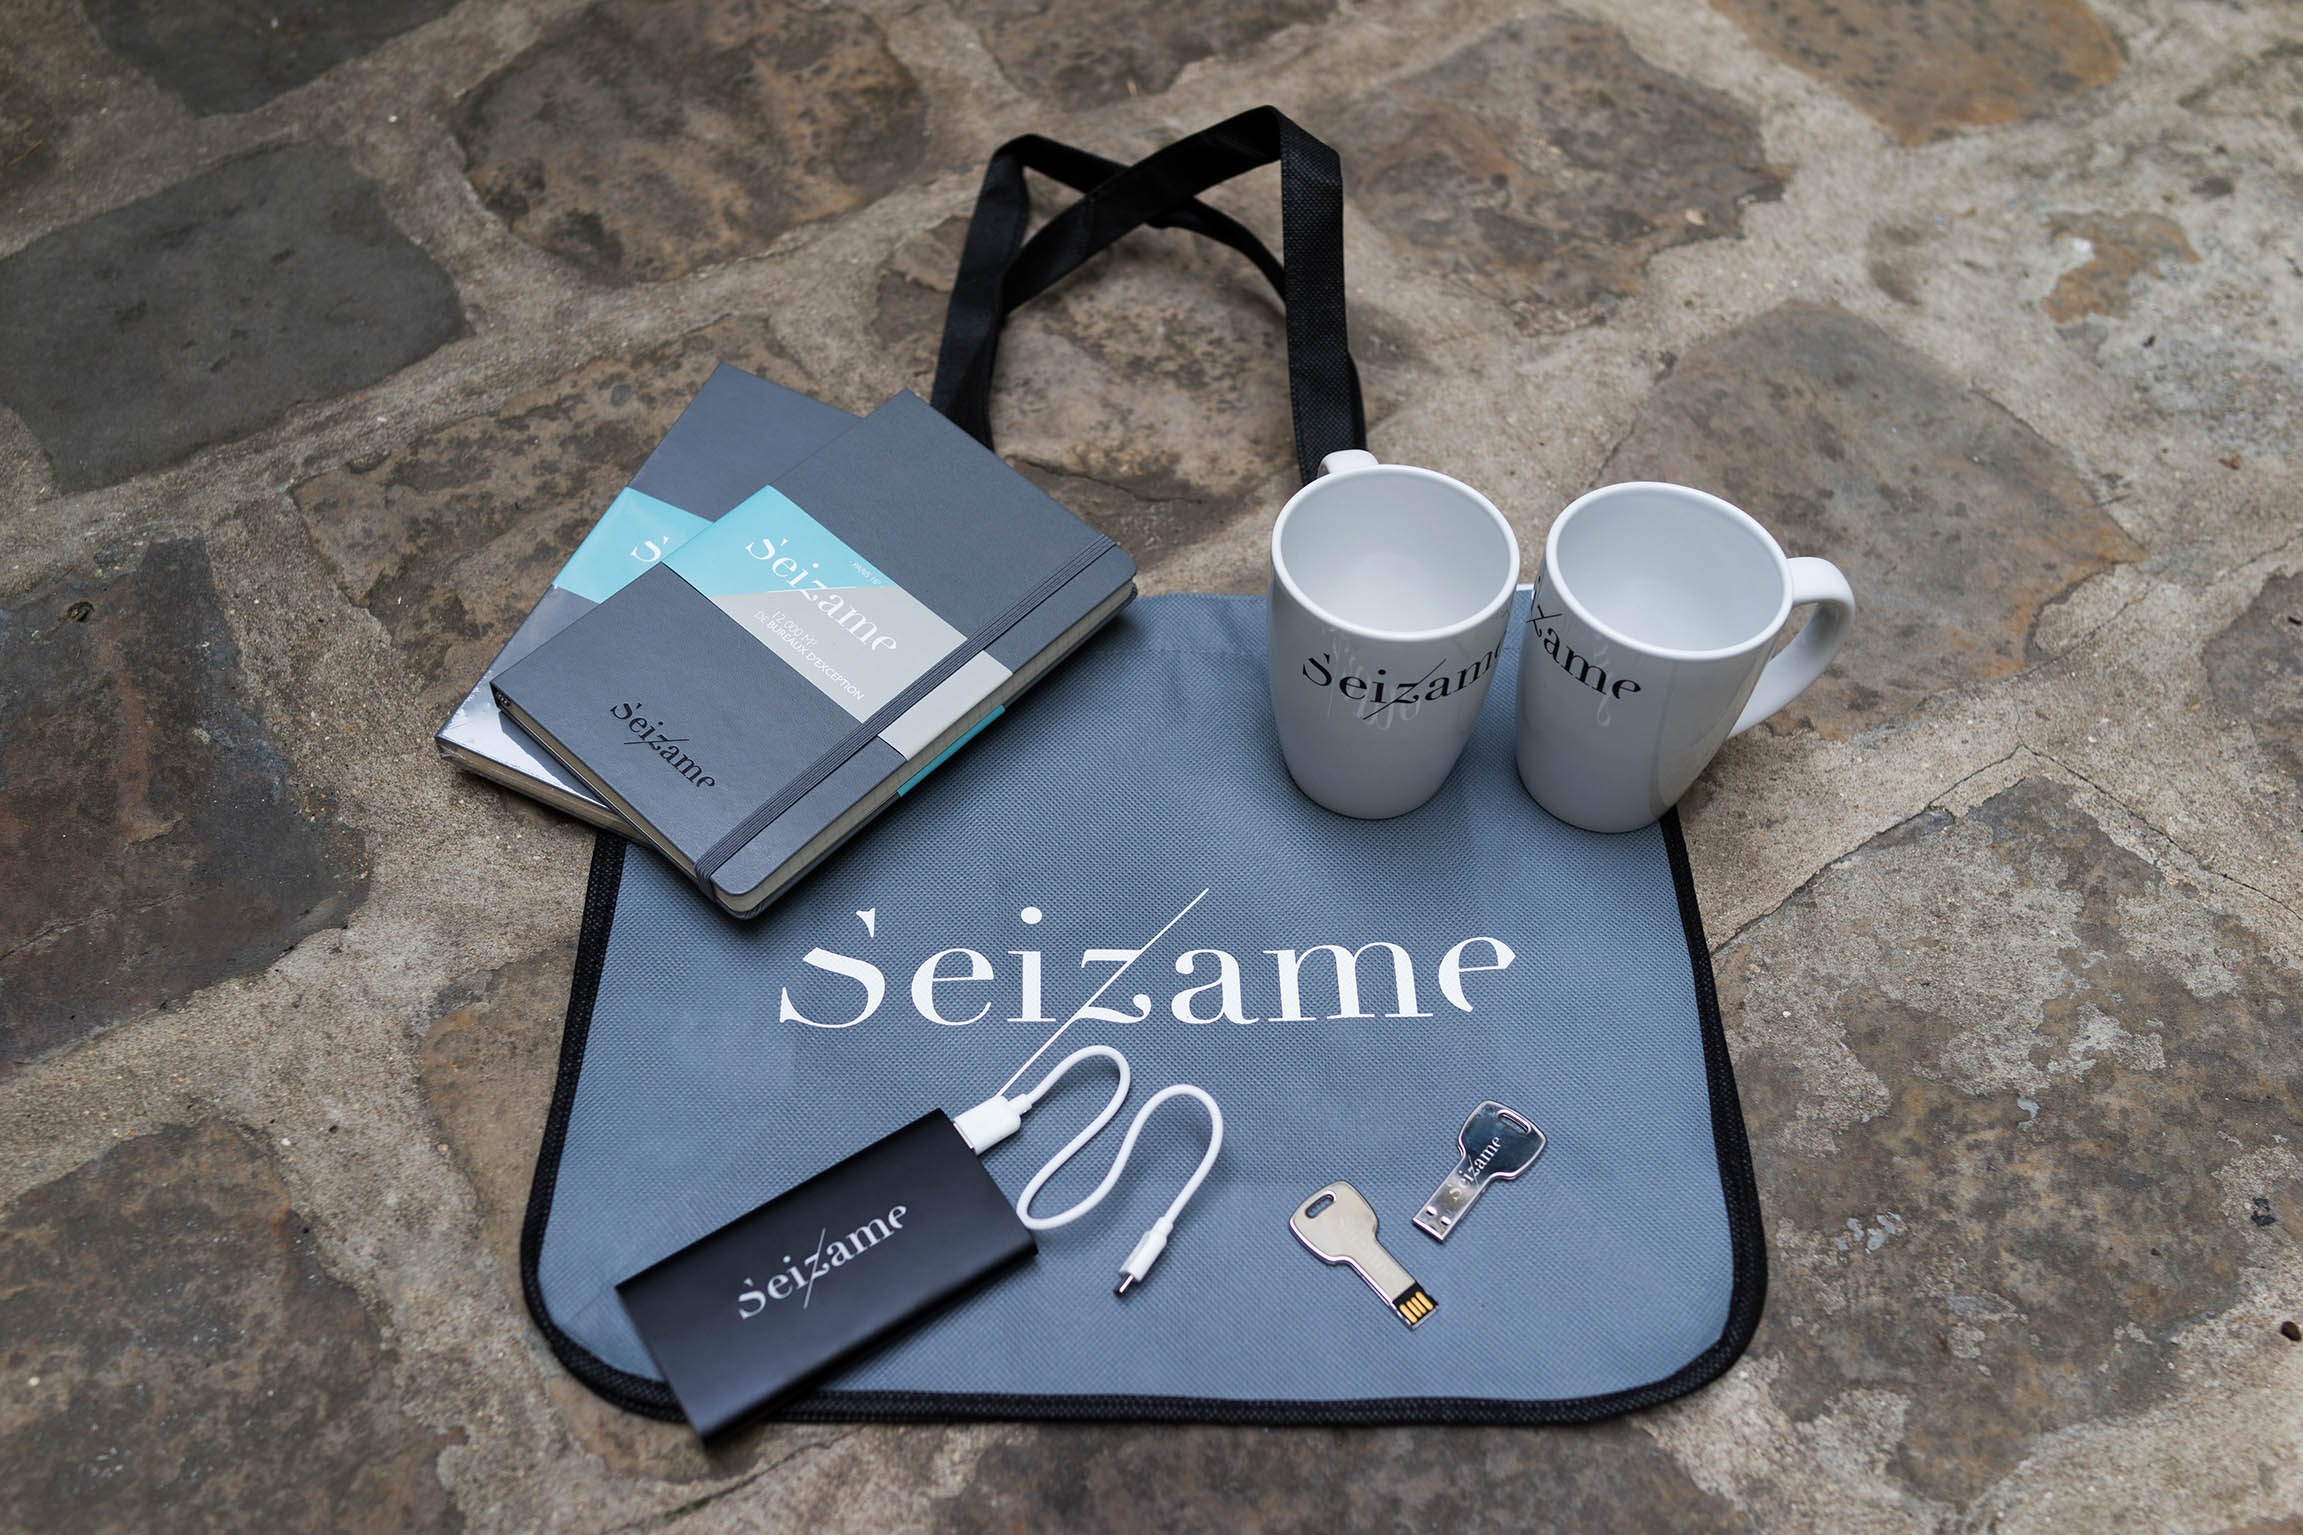 Seizame goodies ultra fluide